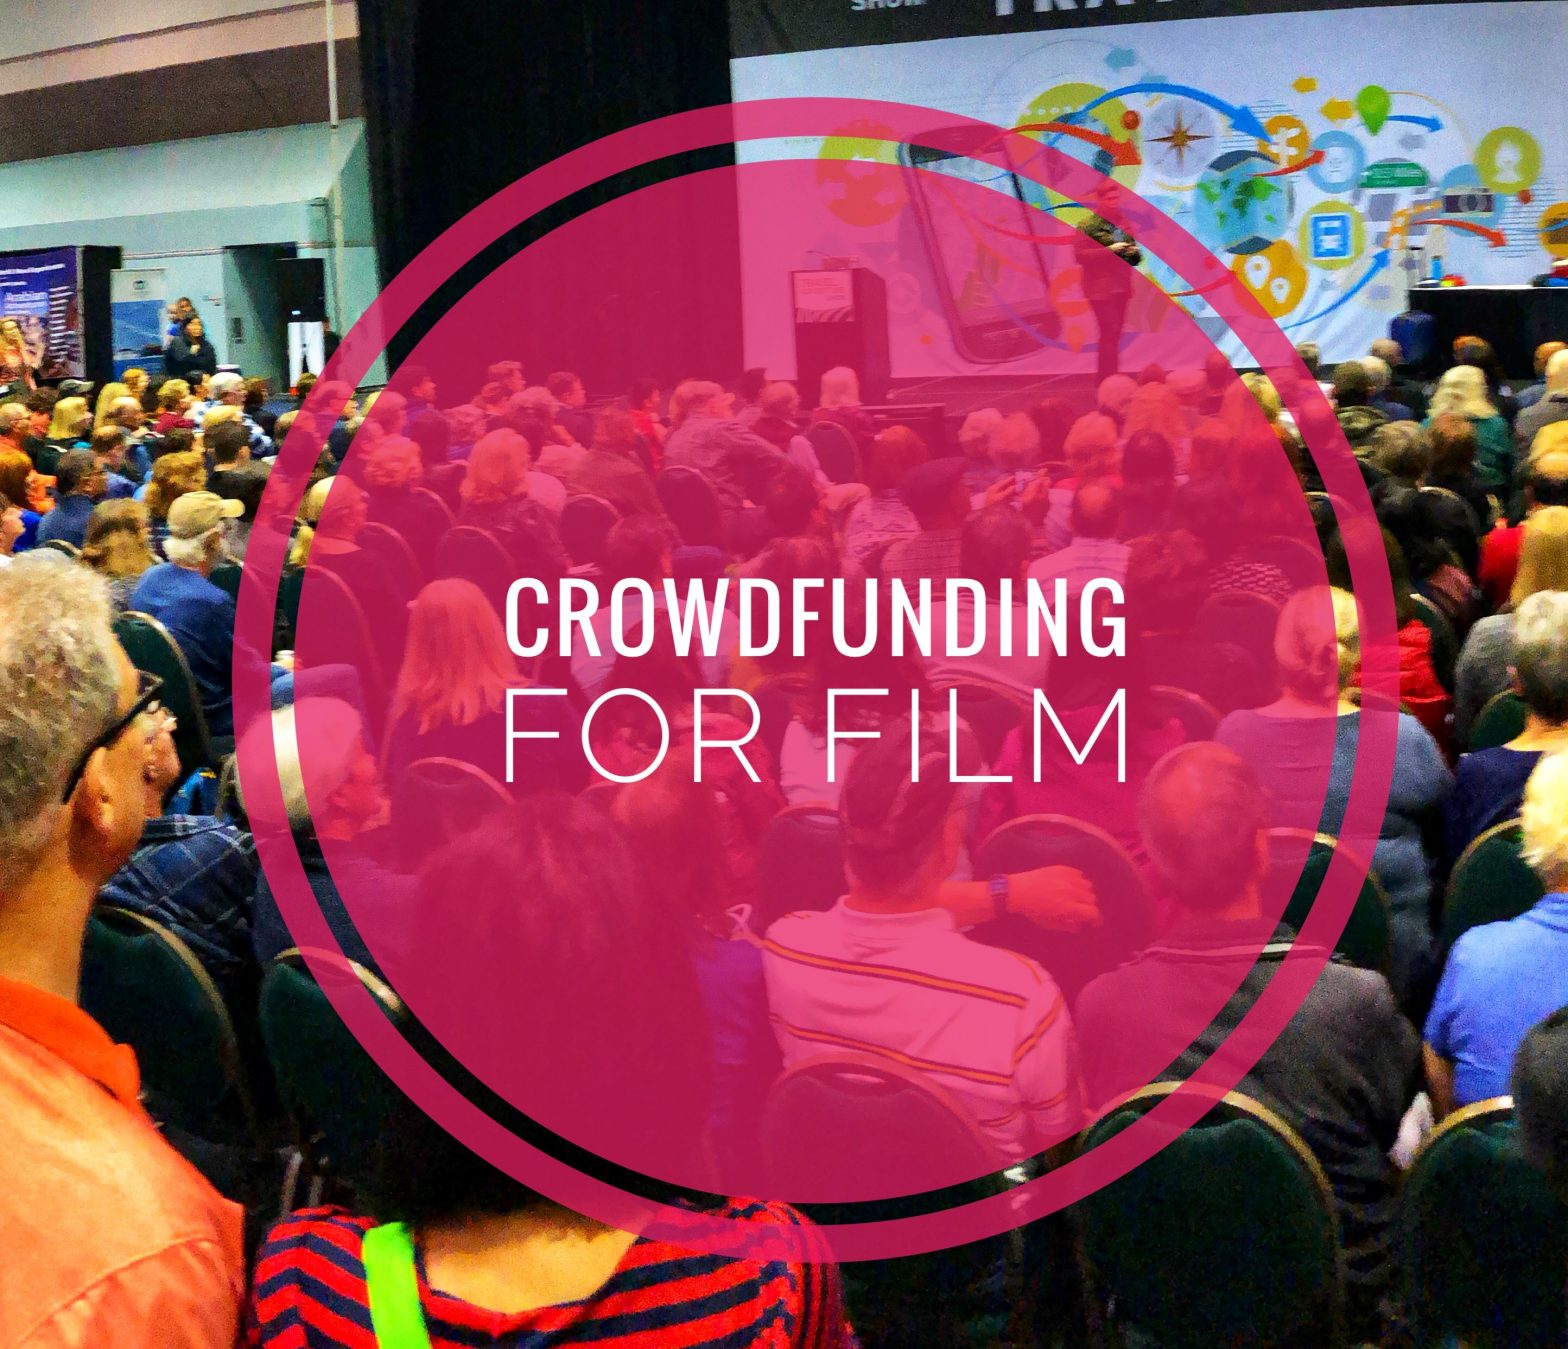 Crowdfunding for Film